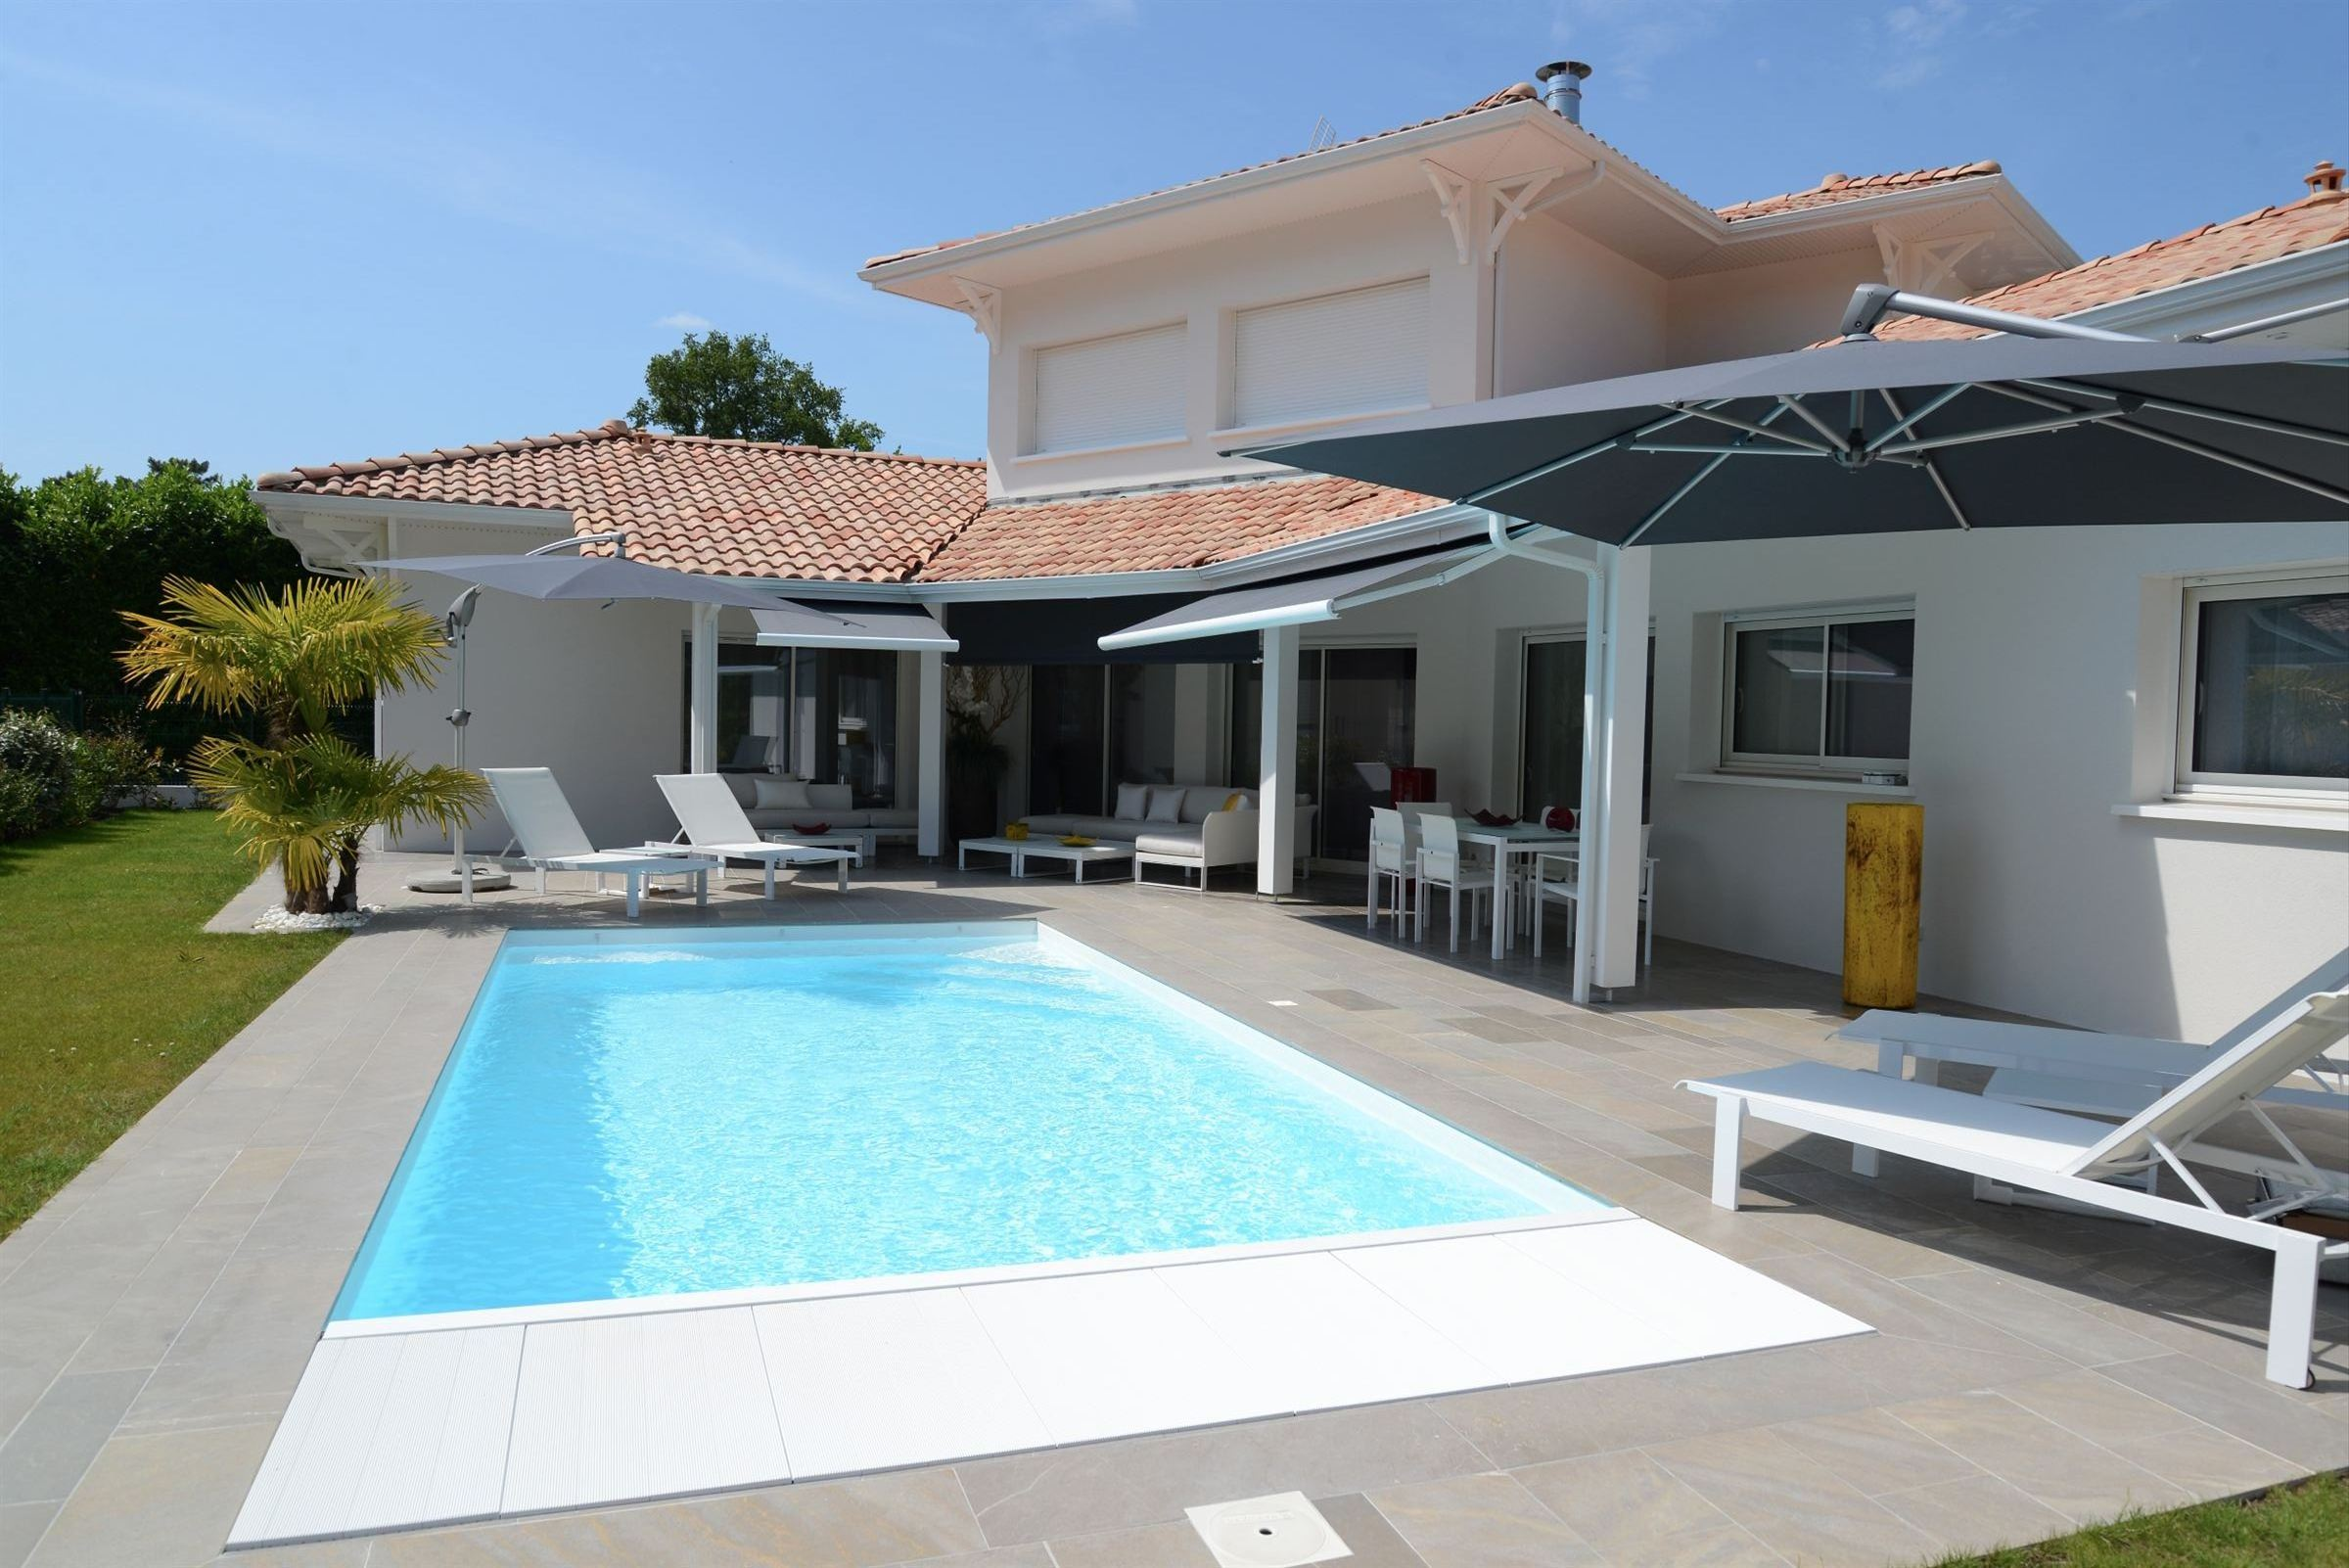 Property For Sale at ANDERNOS,MODERN VILLA WITH SWIMMING POOL